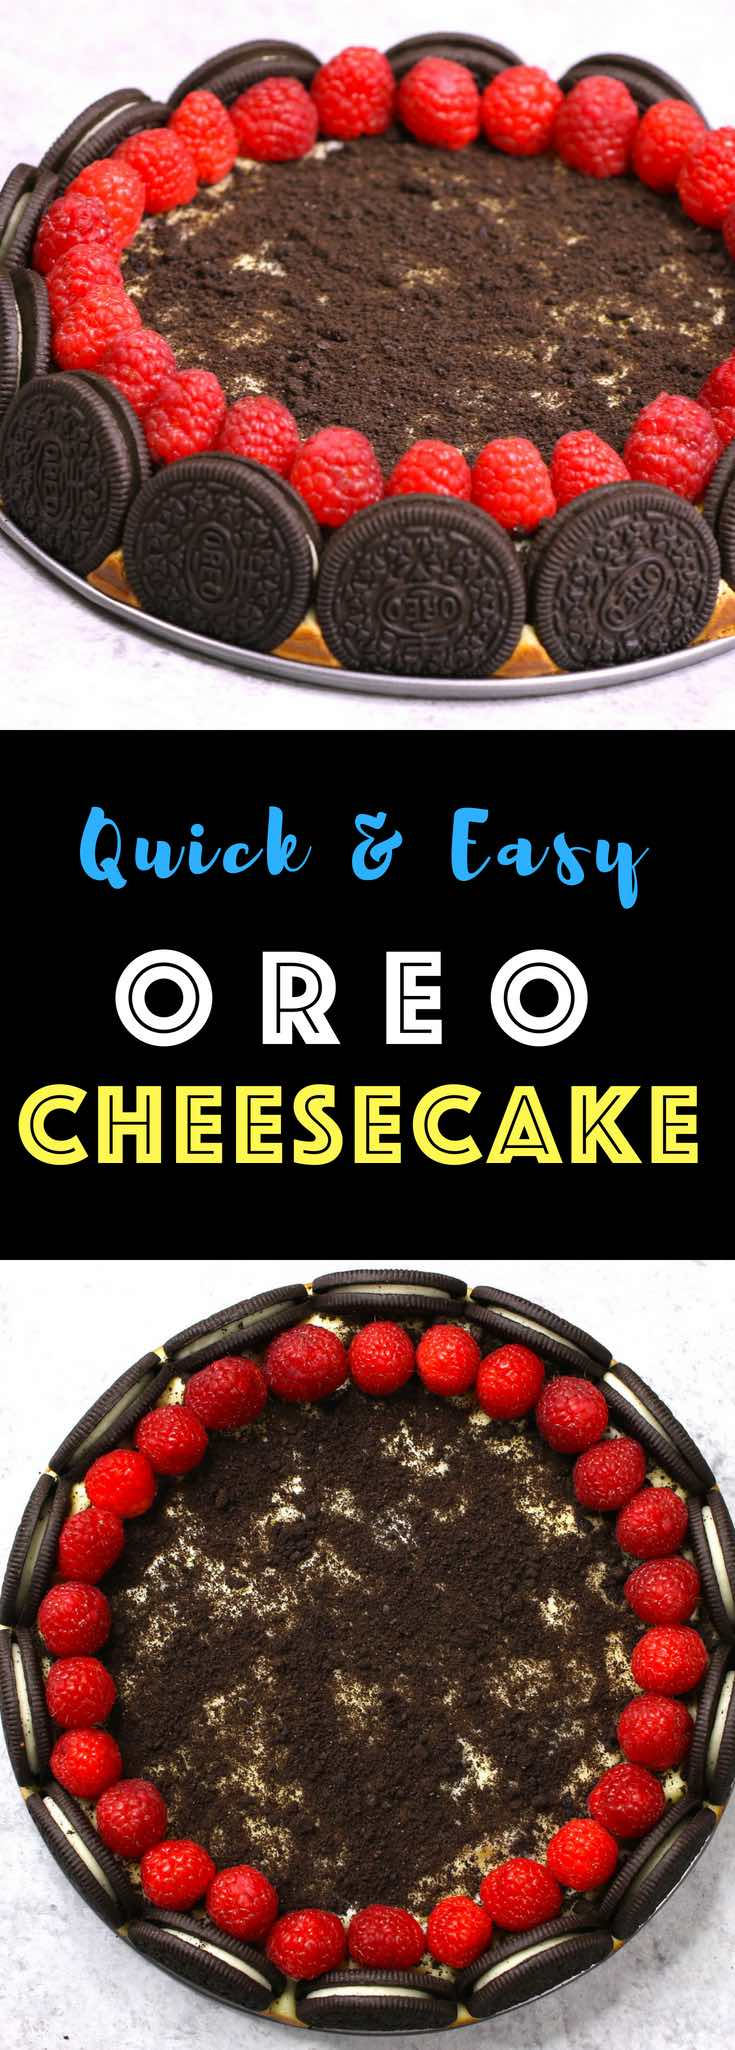 This Oreo Cheesecake is out of this world delicious, and it looks absolutely gorgeous too! I love Oreos and cheesecake, and this time I add raspberries. It totally melt-in-your-mouth and highly addictive! #OreoCheesecake